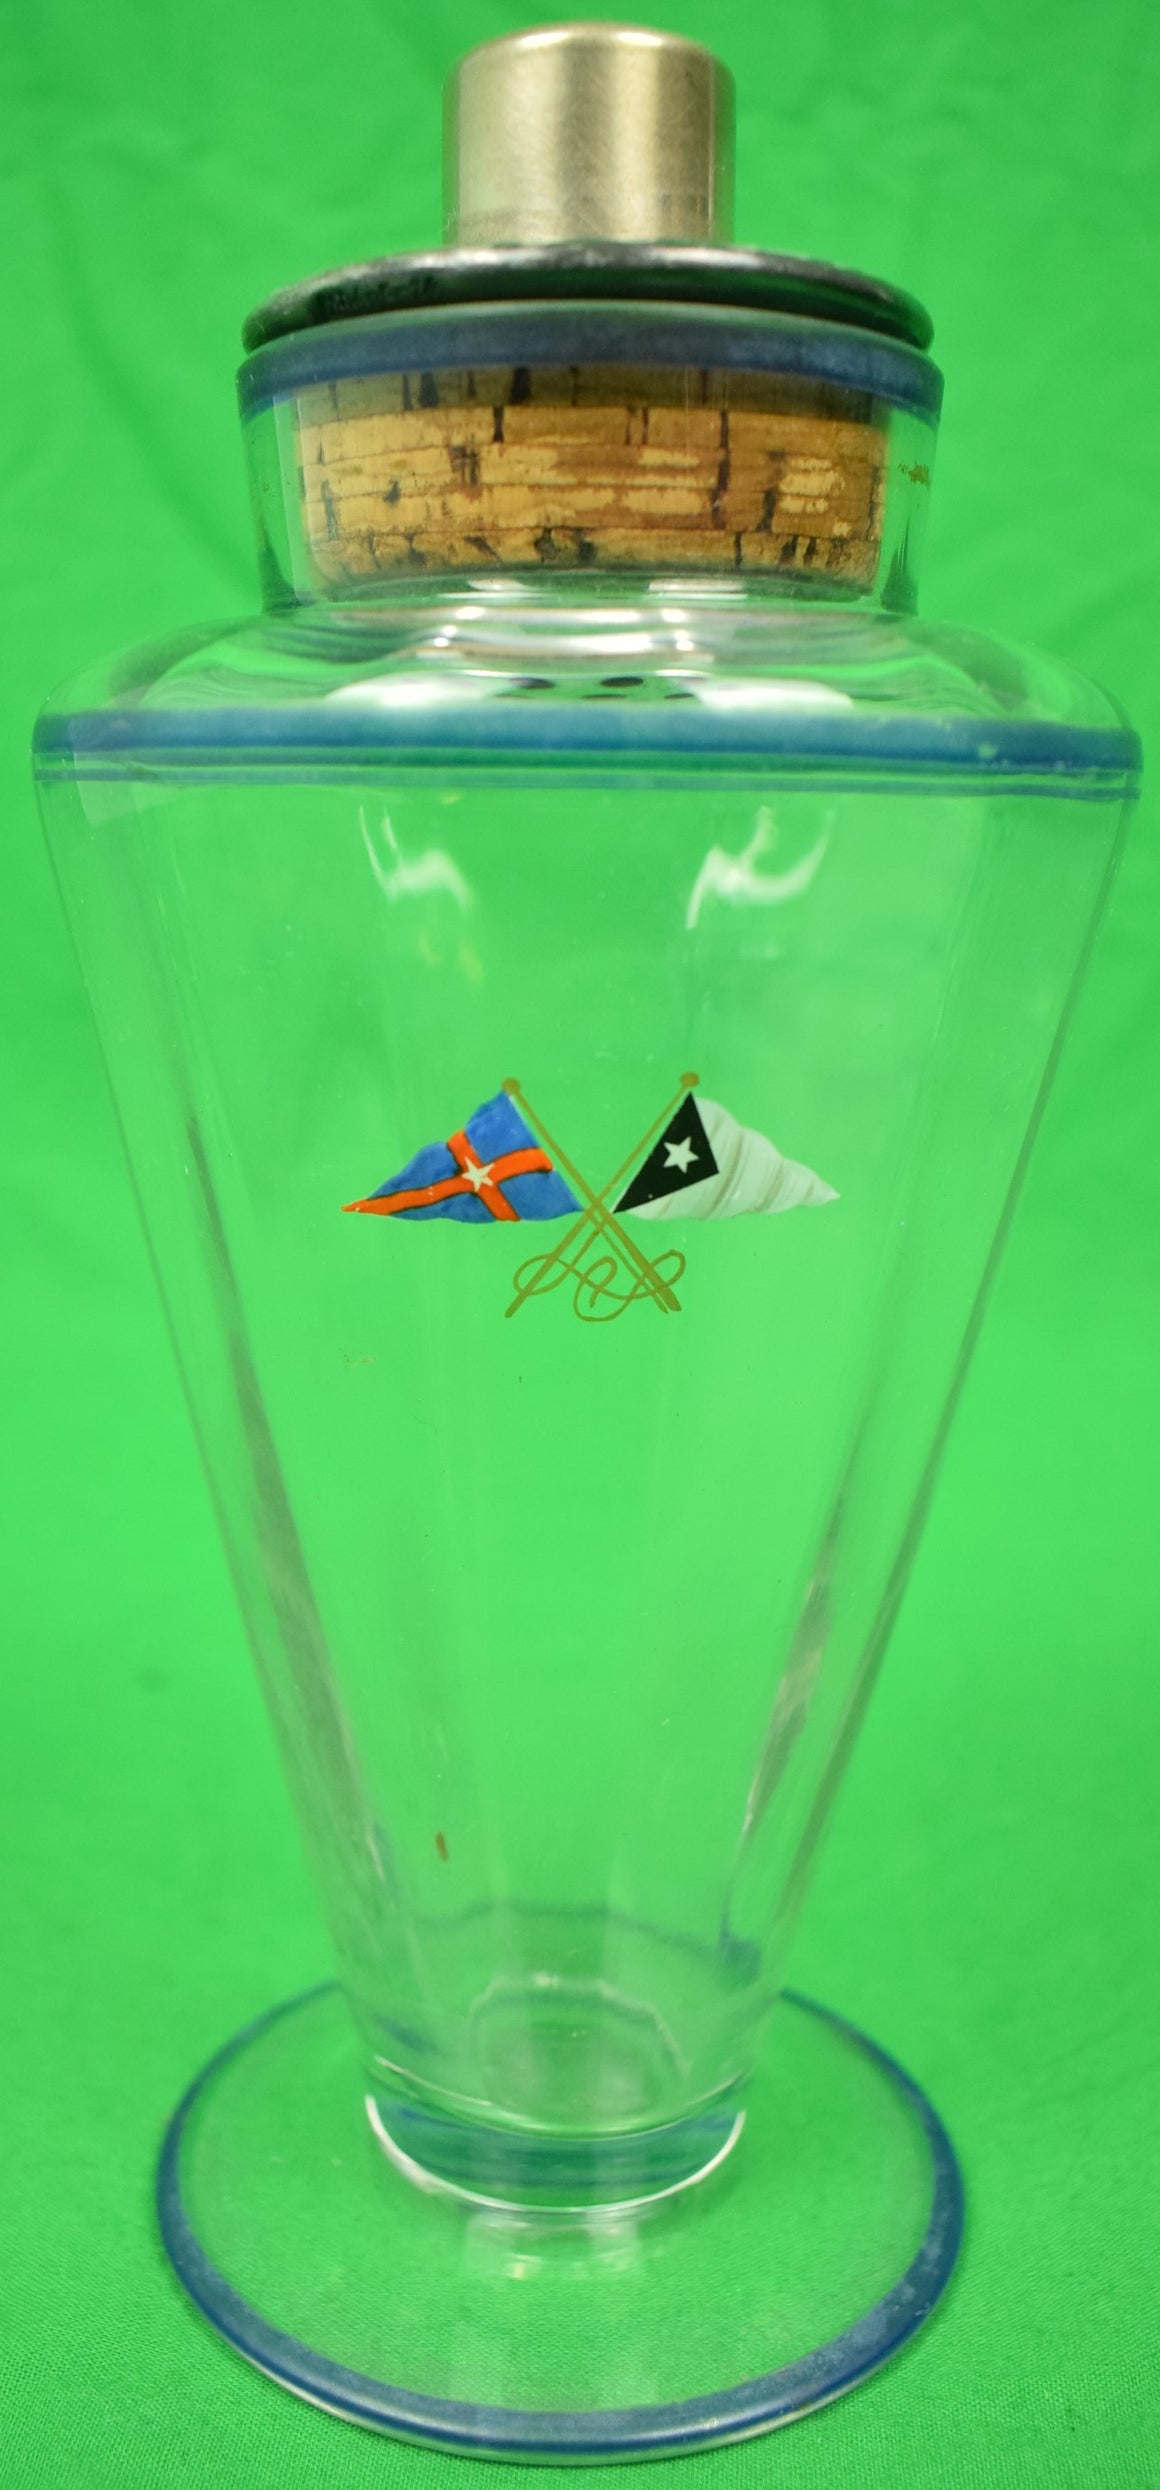 Art Deco Glass c1924 Cocktail Shaker w/ Hand-Painted New York Yacht Club Signal Flags